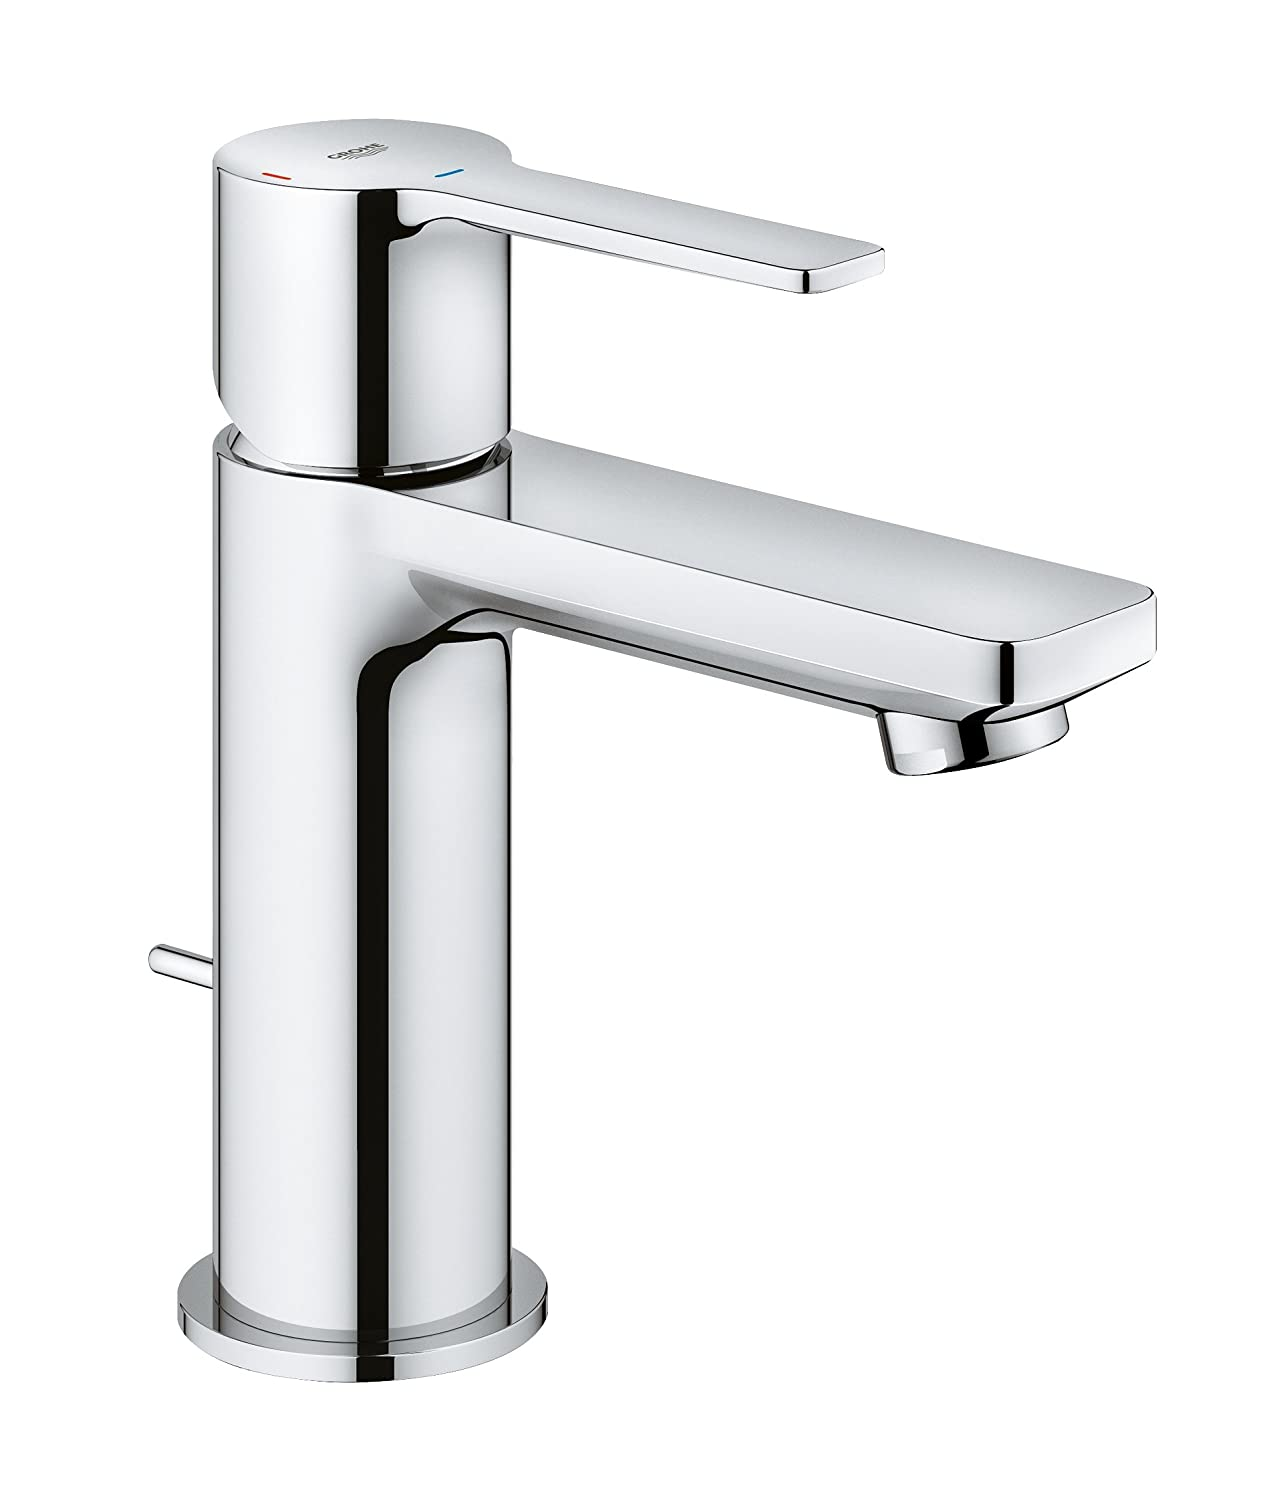 GROHE 23790001 Lineare Mitigeur Lavabo, Chrome, Taille XS